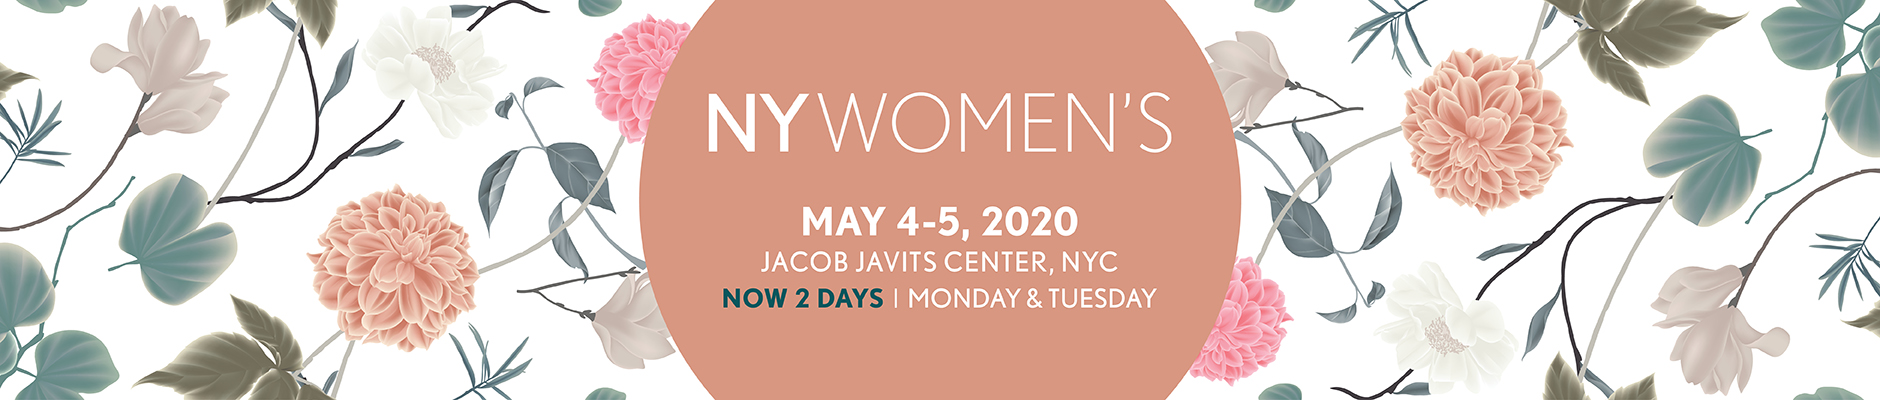 NYWoman's May 4-5, 2020.  Jacob Javits Center, NYC. 2 days only | Monday & Tuesday.